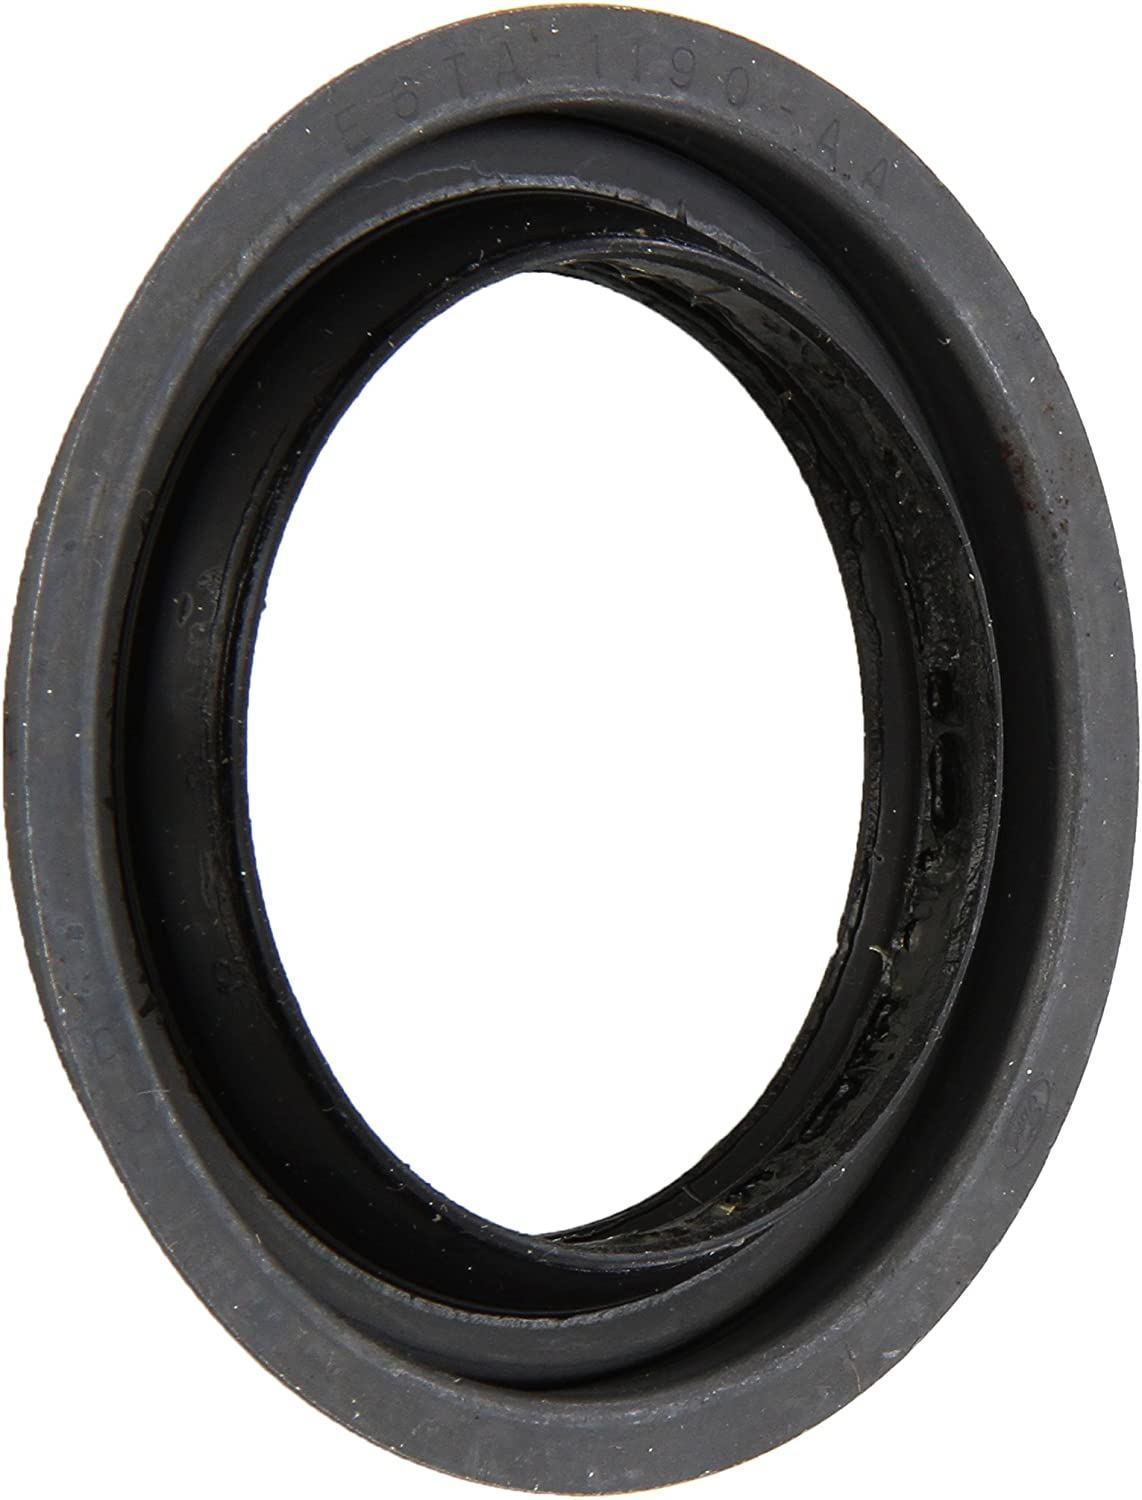 Motorcraft BRS9 low-pricing Axle Shaft Free shipping anywhere in the nation Output Seal